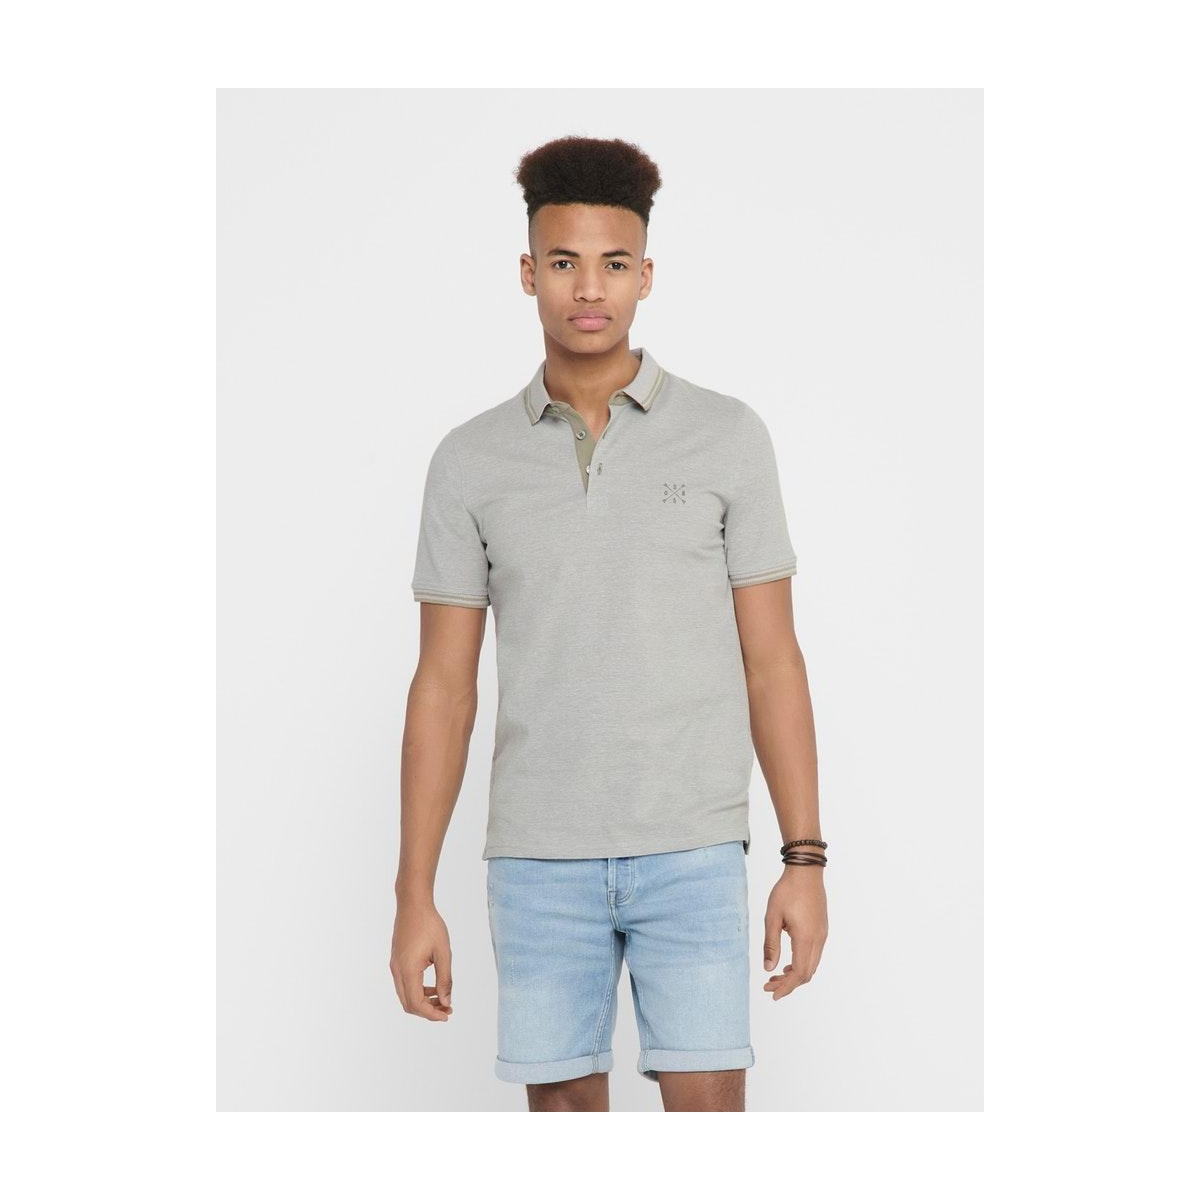 onsstan life ss fitted polotee(6560 22011349 only & sons polo seagrass/solid